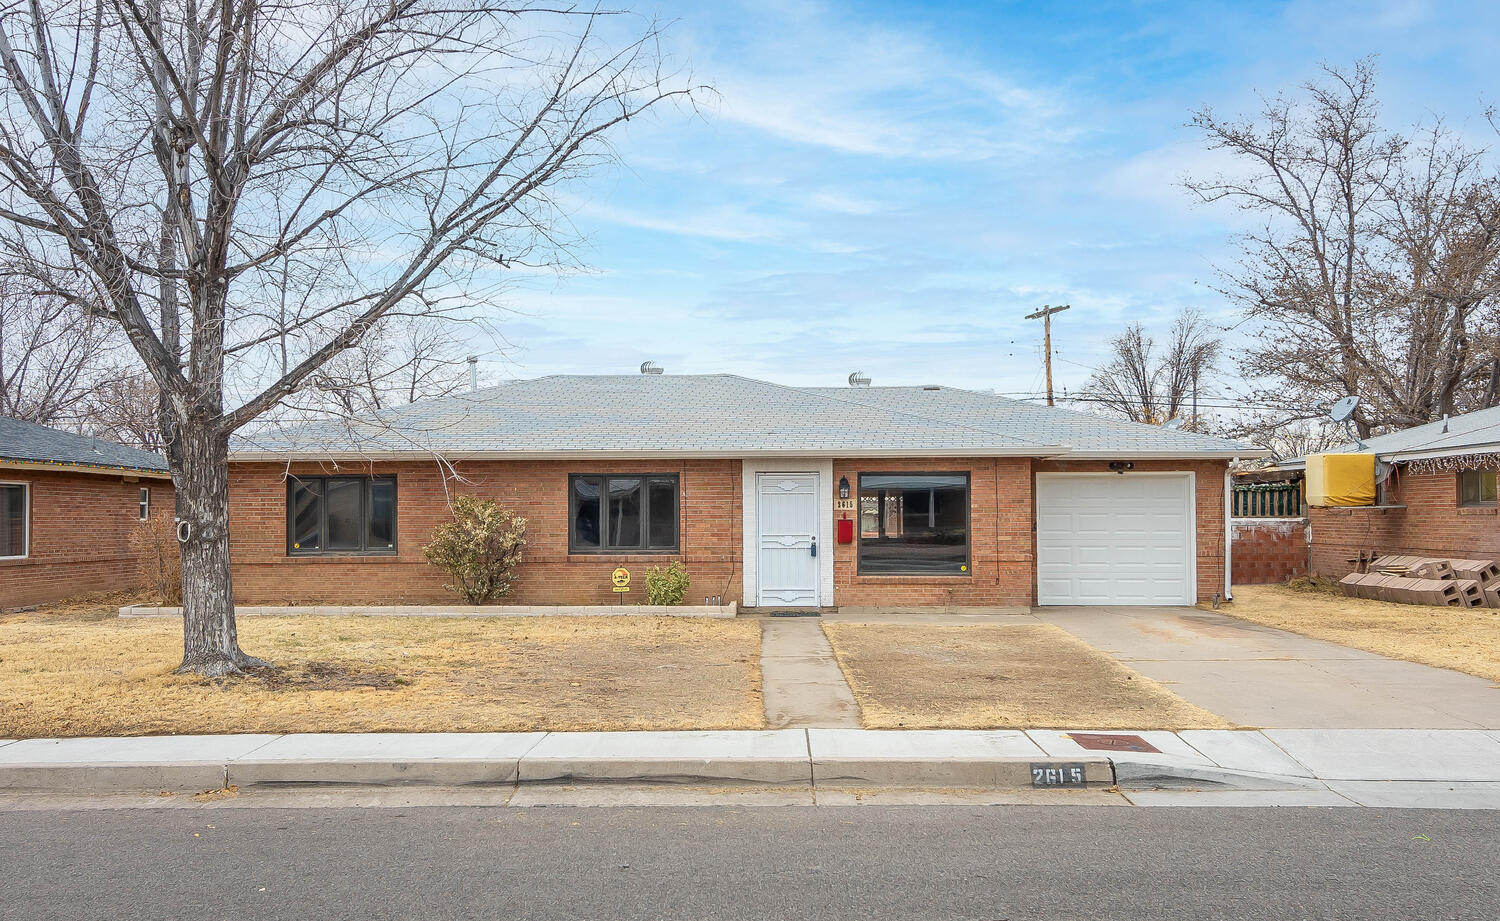 2615 GENERAL BRADLEY STREET NE, ALBUQUERQUE, NM 87112